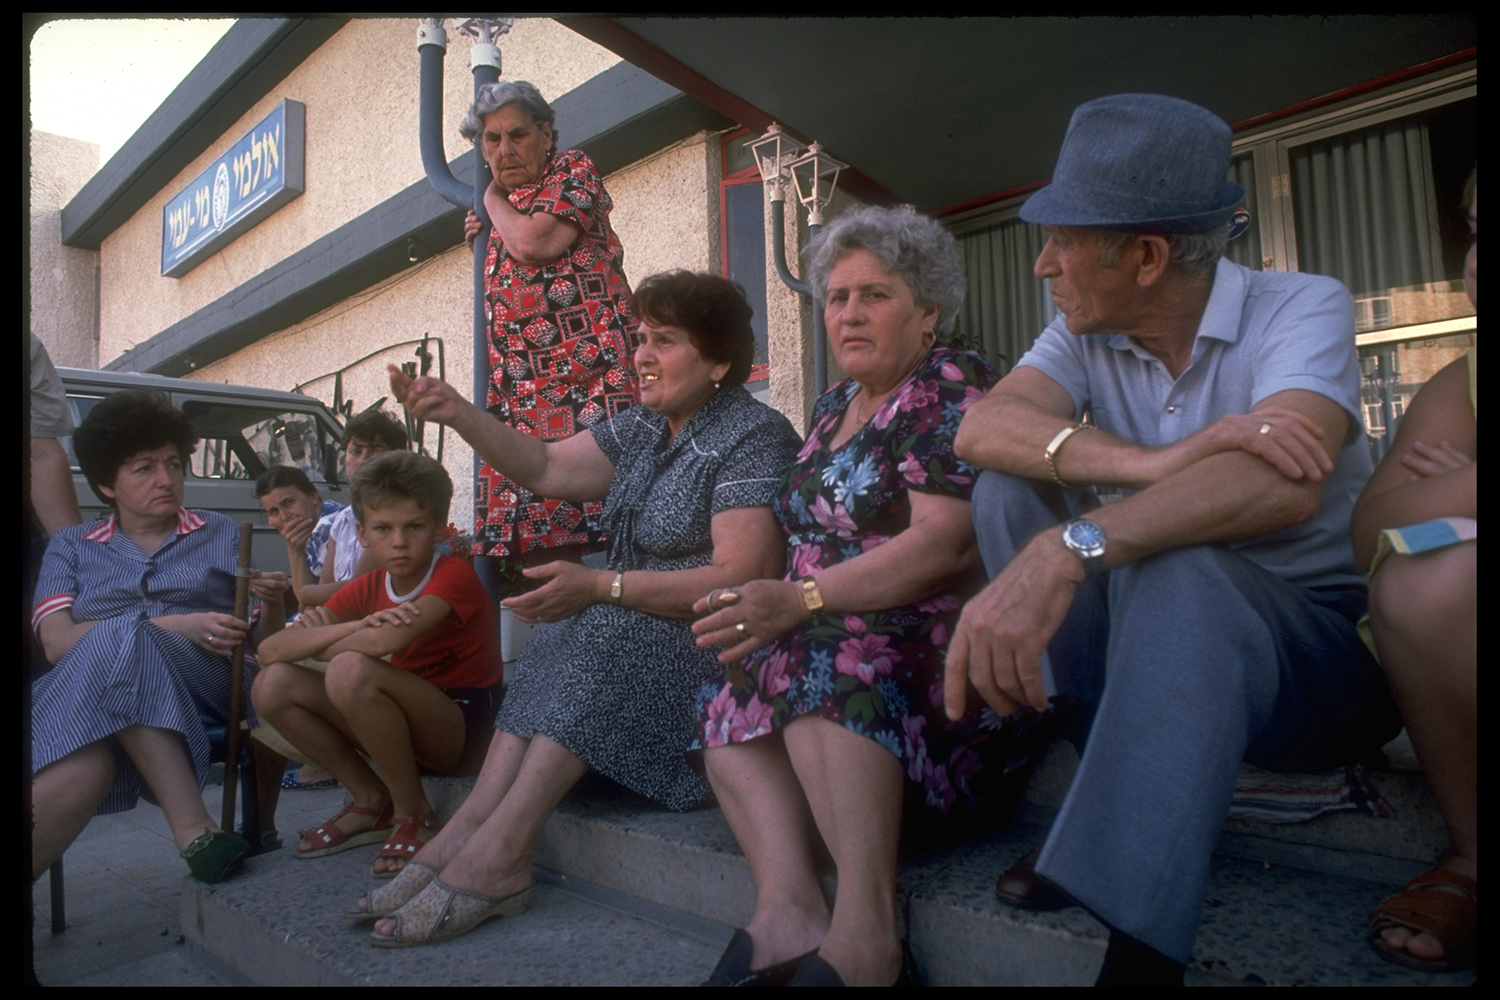 Russian immigrants to Israel temporarily housed in a hotel in 1989. David Rubinger/The LIFE Images Collection via Getty Images/Getty Images.